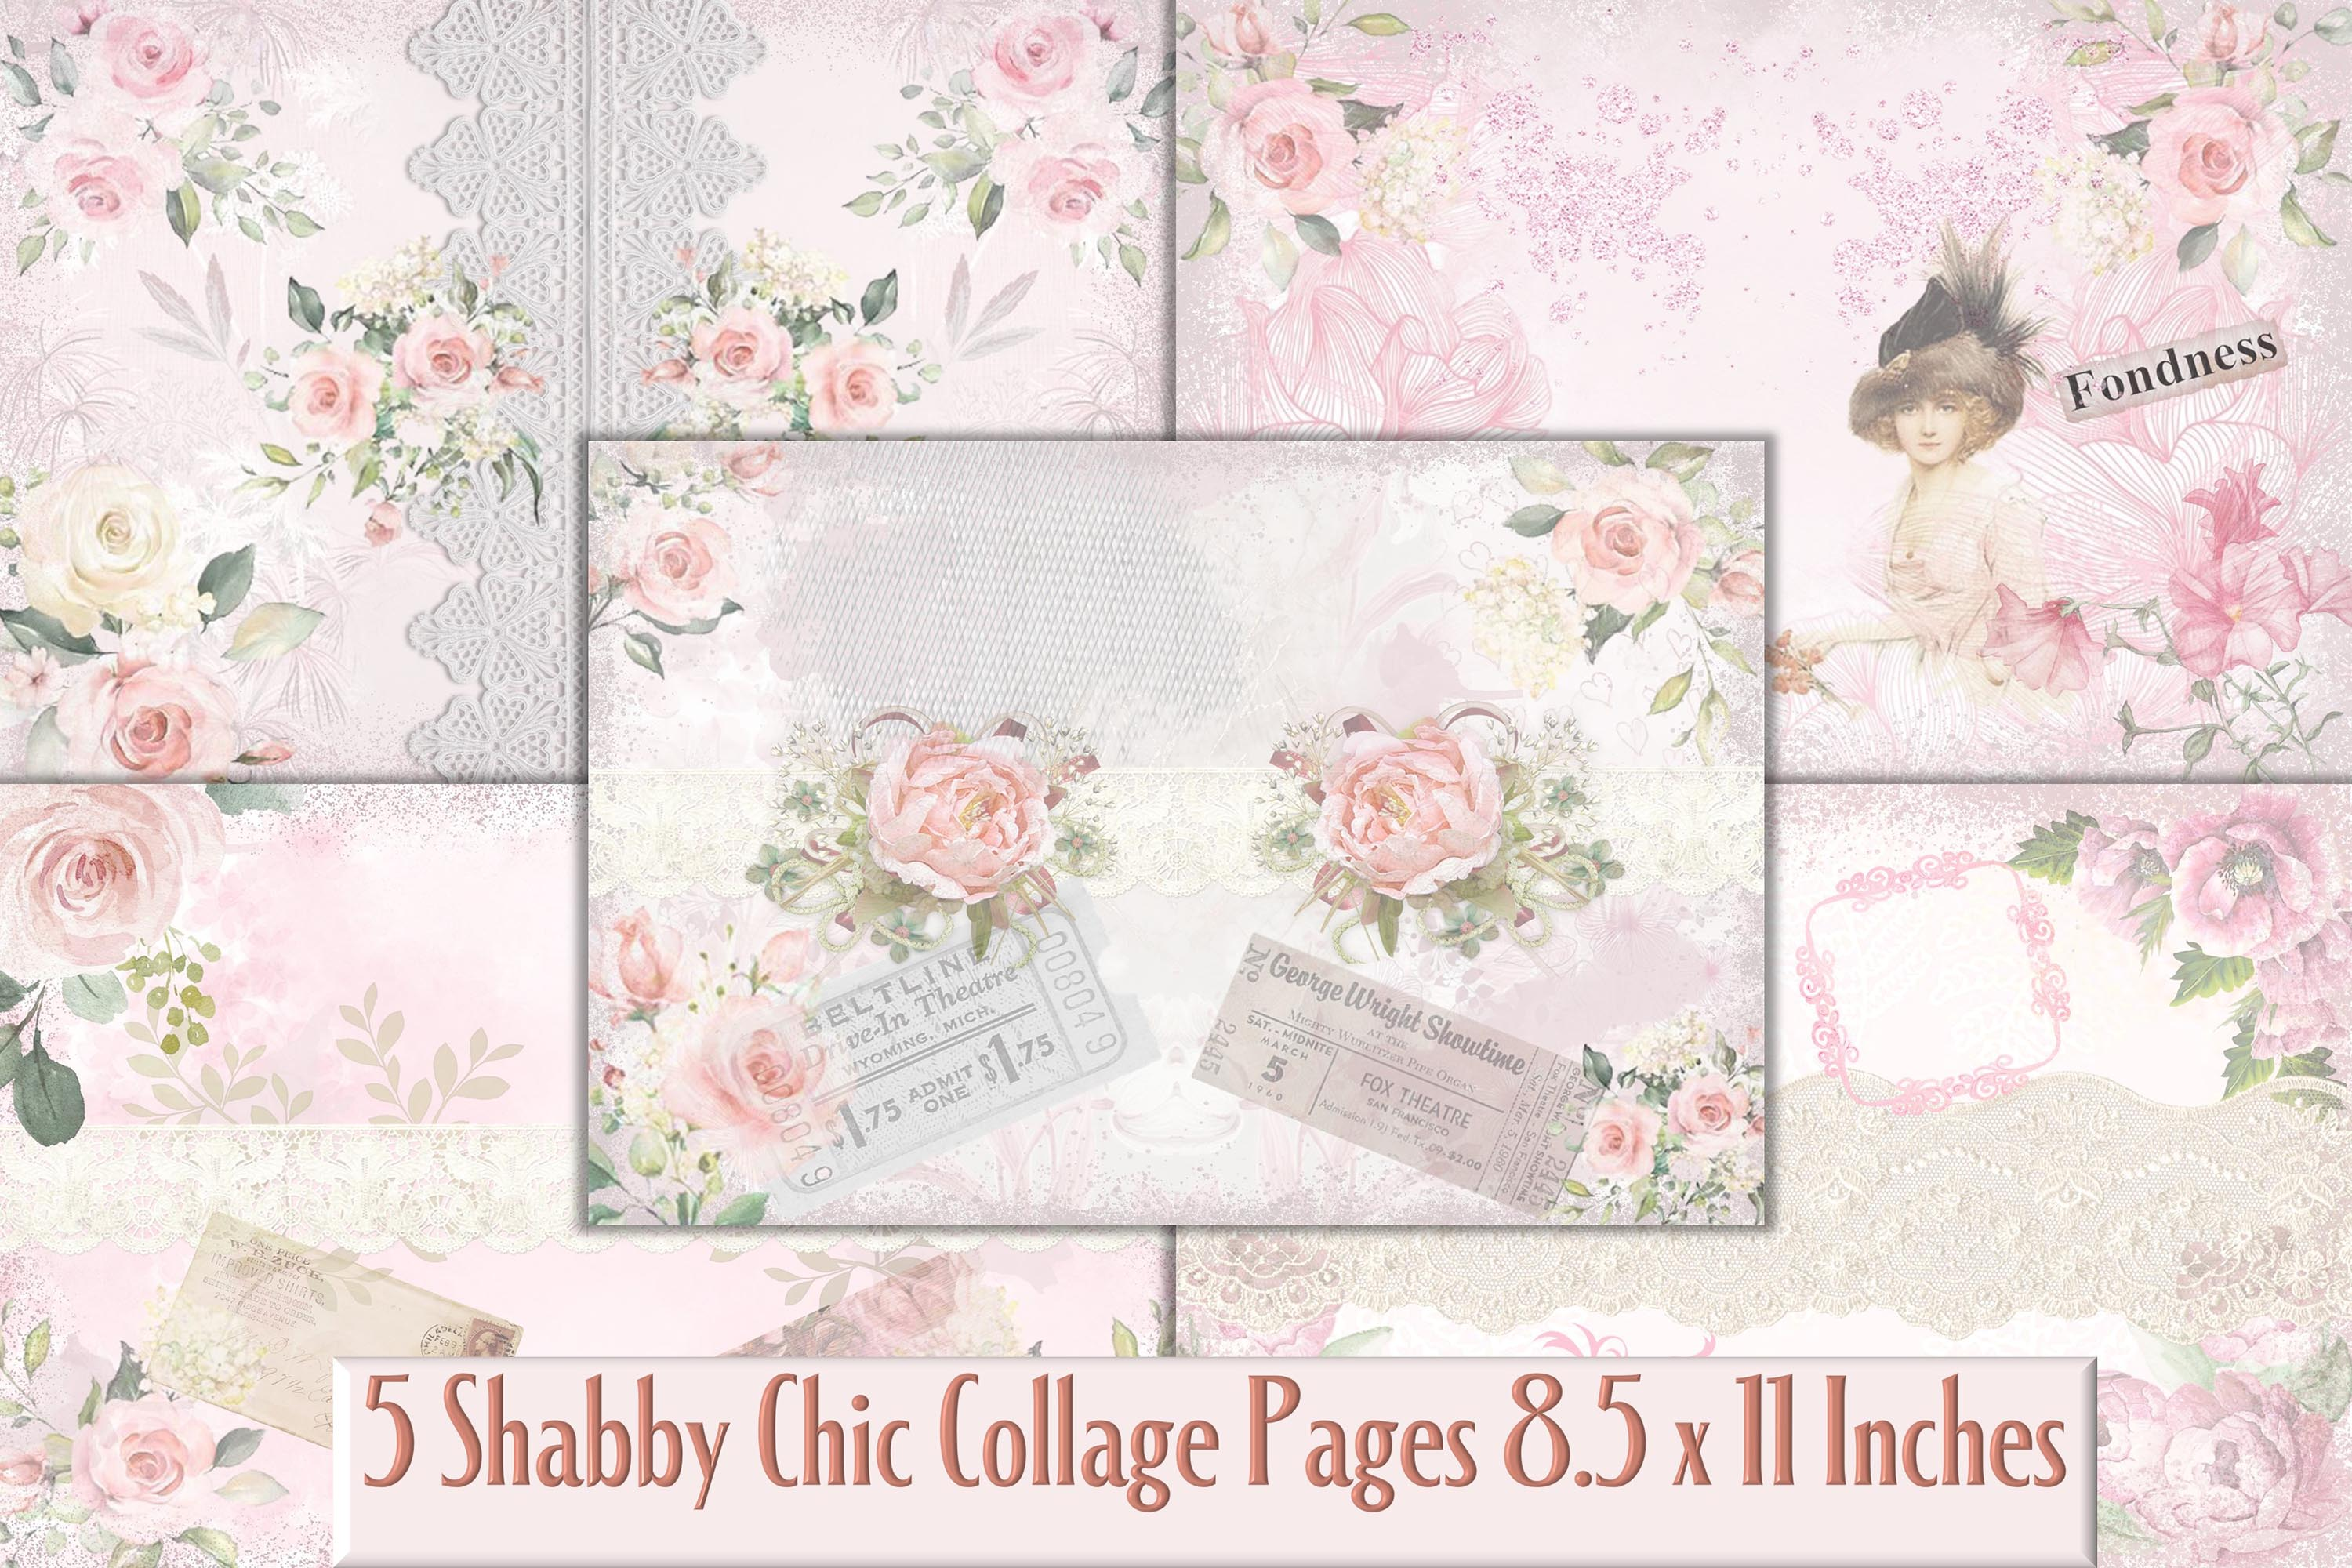 Shabby Chic Printable Backgrounds Graphic By The Paper Princess Creative Fabrica